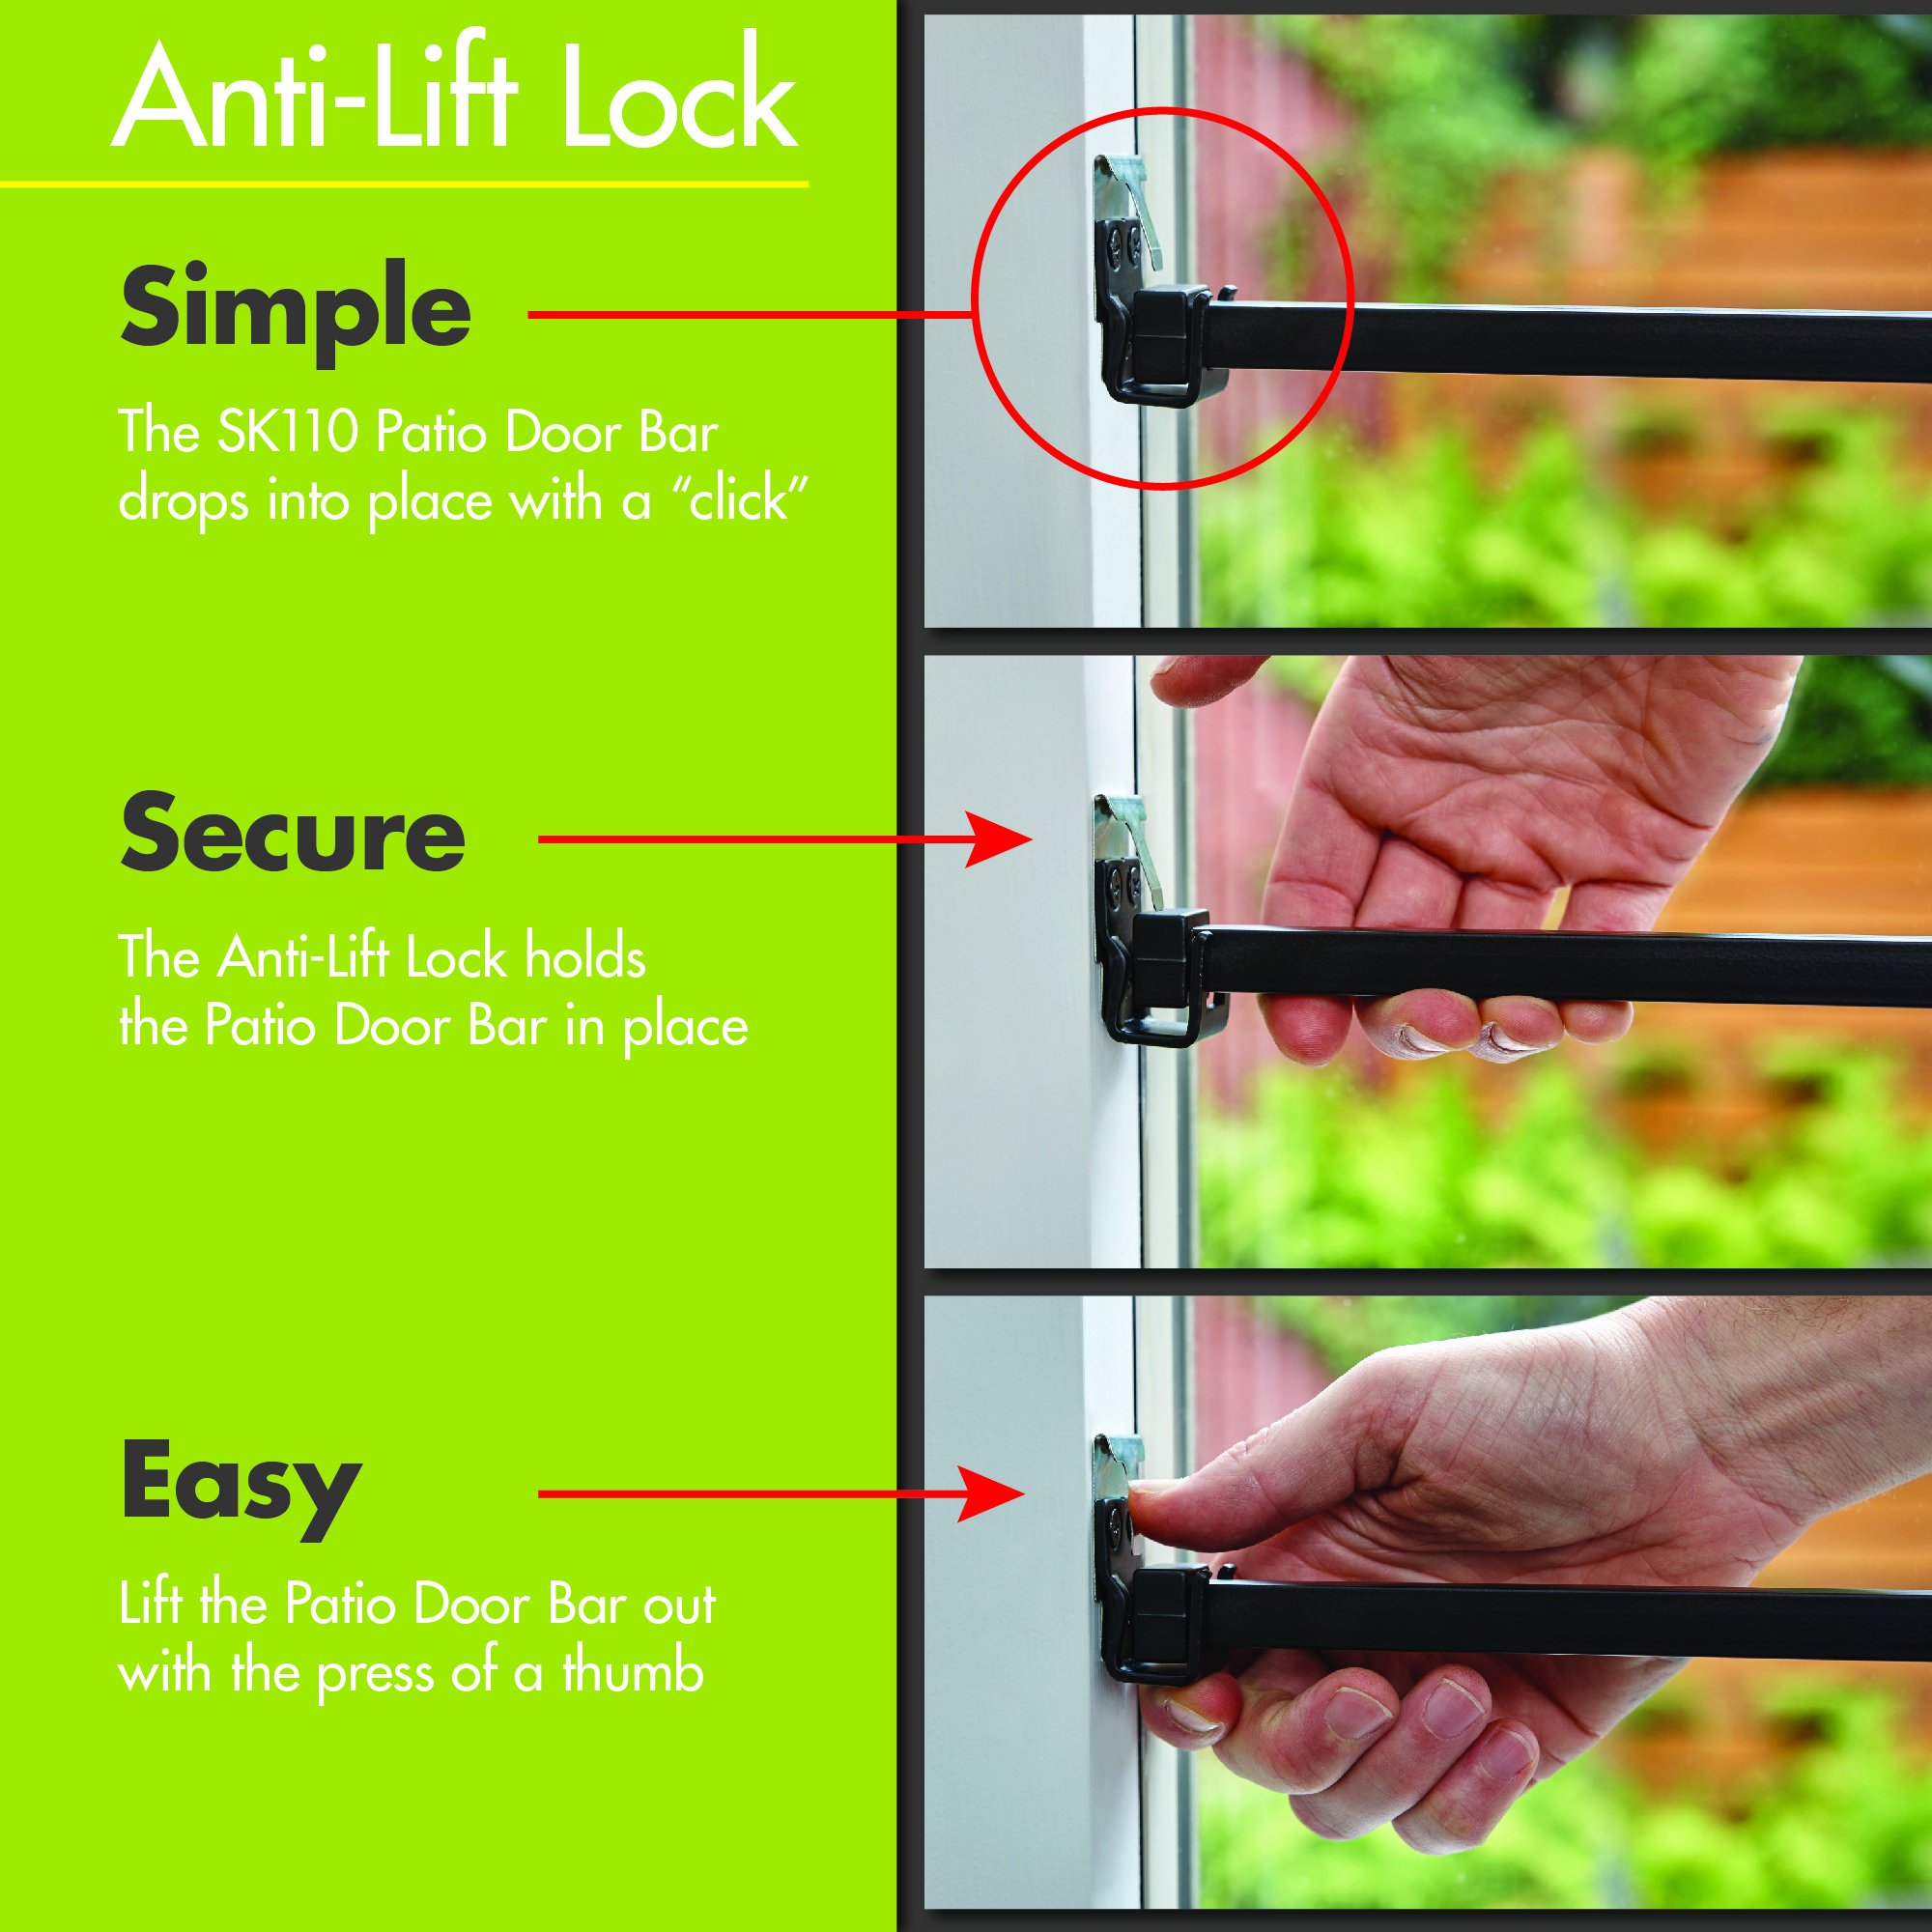 Ideal Security SK110 Patio Door Security Bar with Child-Proof Lock, Adjustable 25-48 inches for Ventilation, White by Ideal Security Inc. (Image #4)